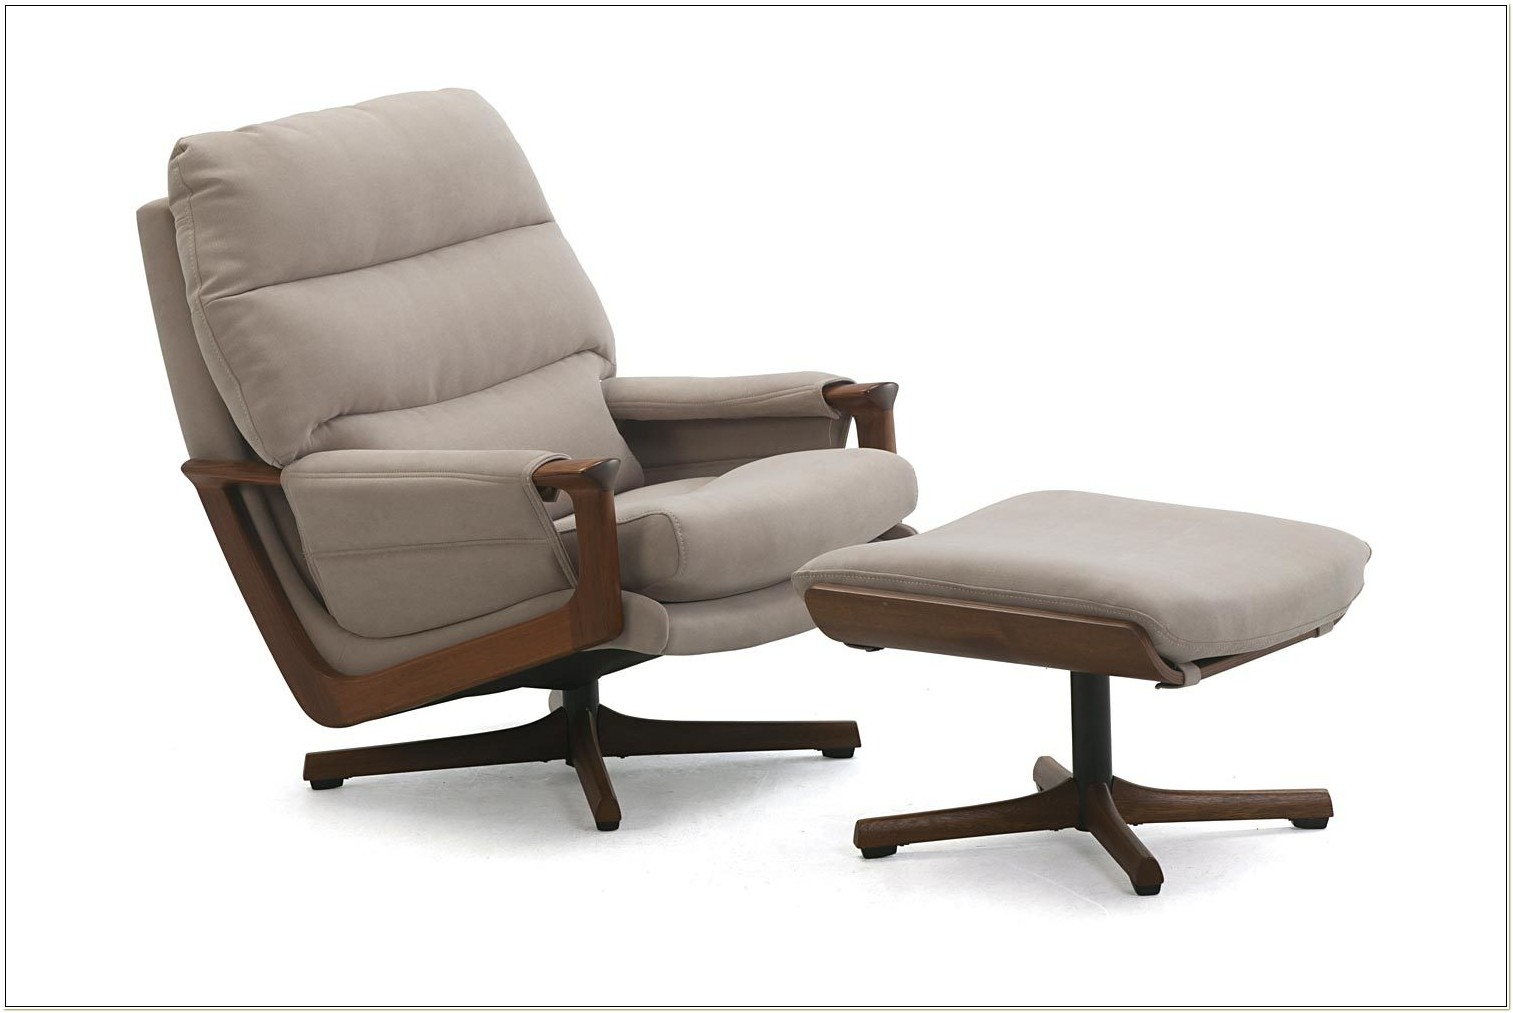 Swivel Chairs With Footstool